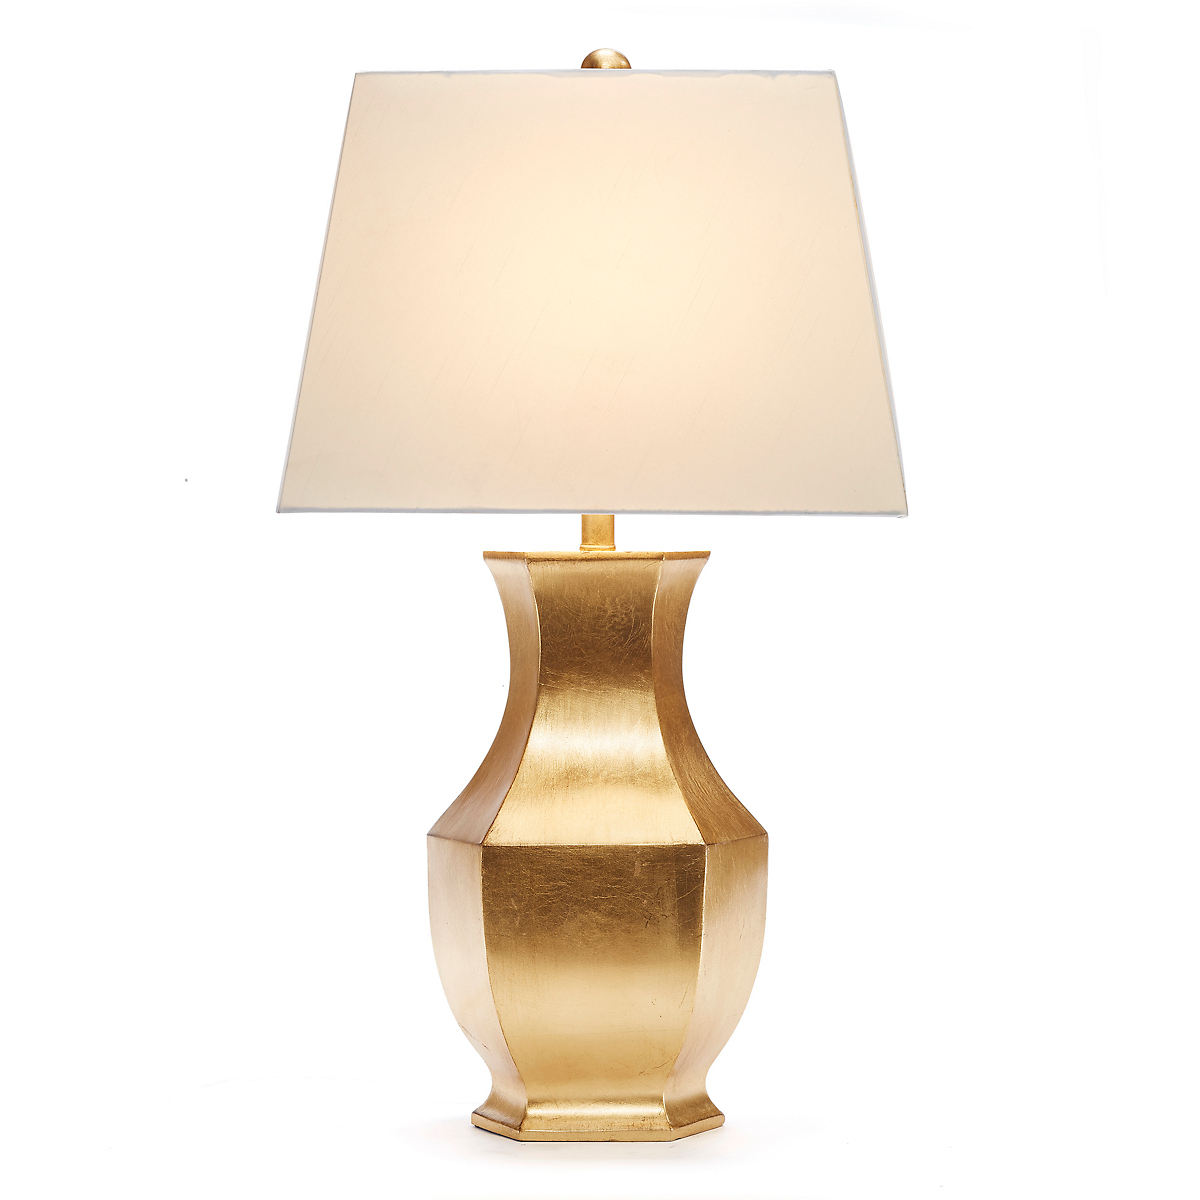 Mason gold leaf lamp gumps mason gold leaf lamp aloadofball Images